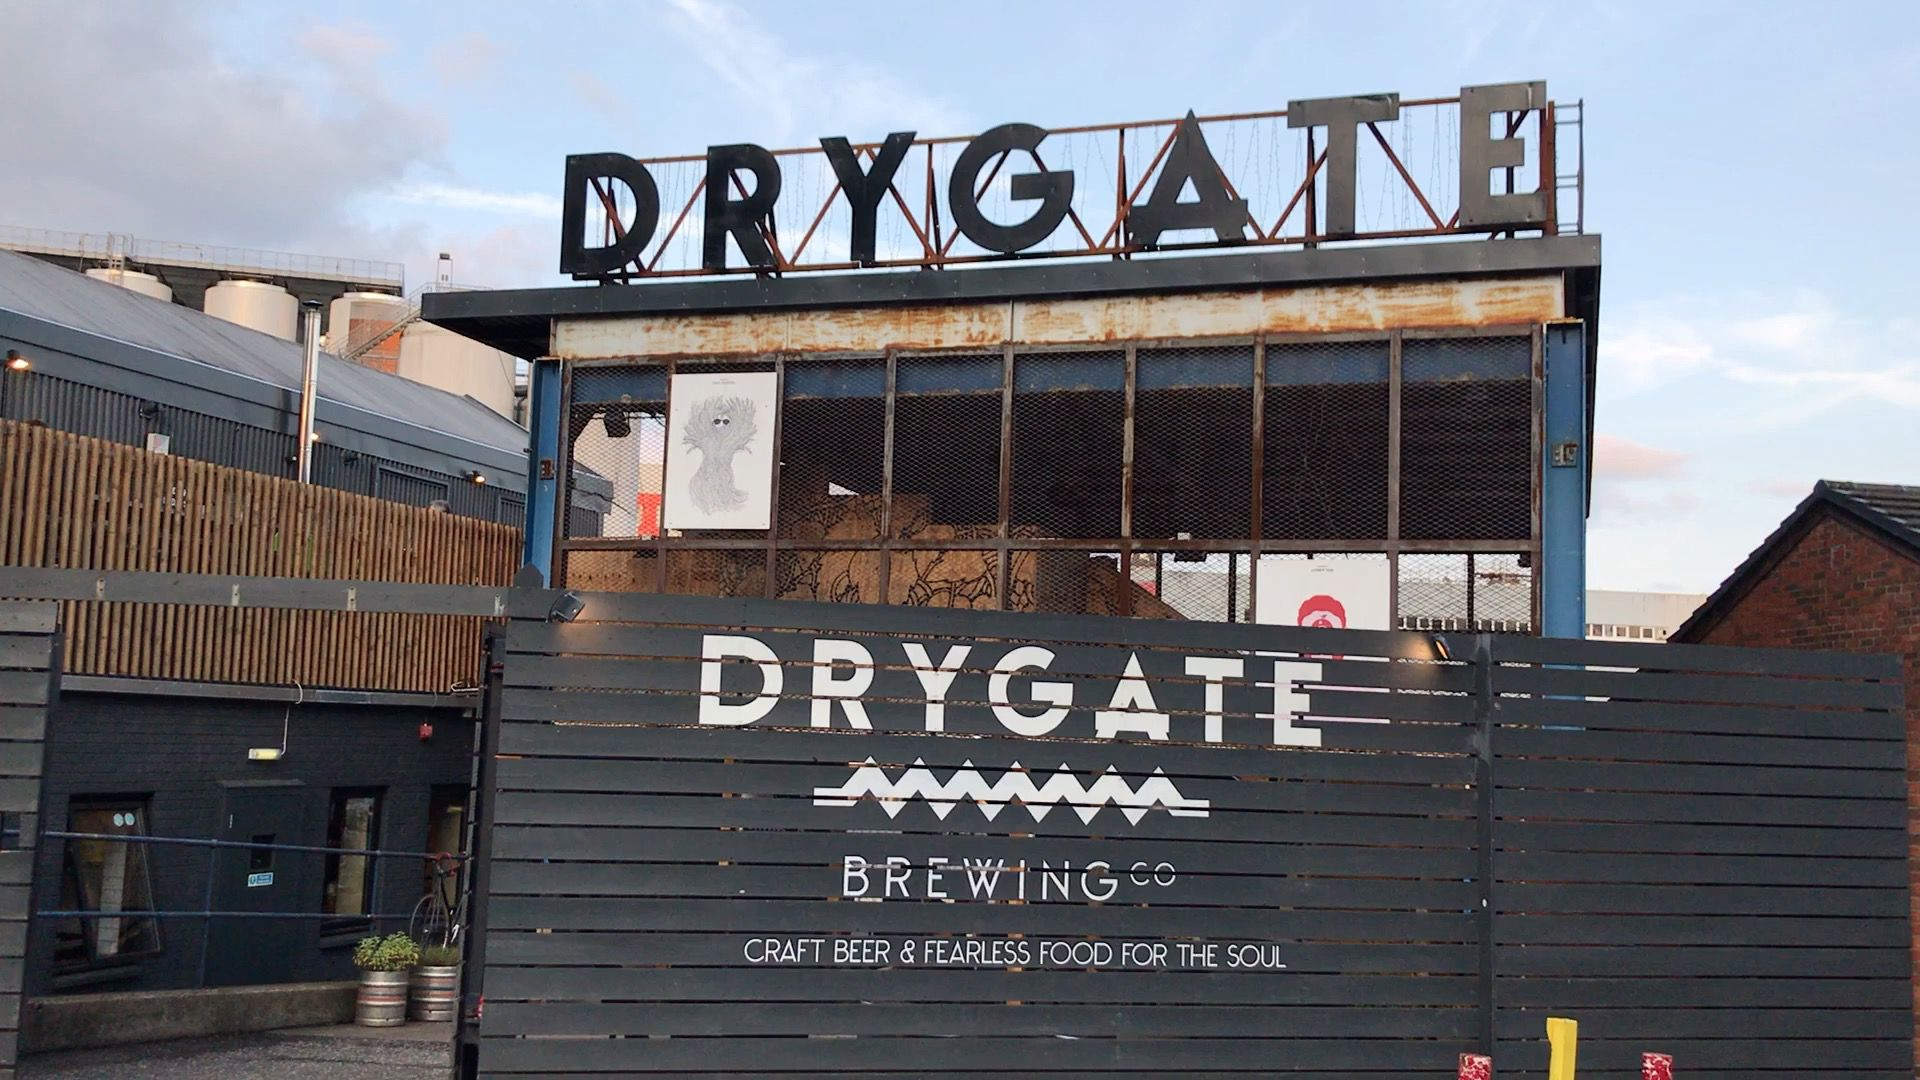 Glasgow - Drygate Brewing Co.